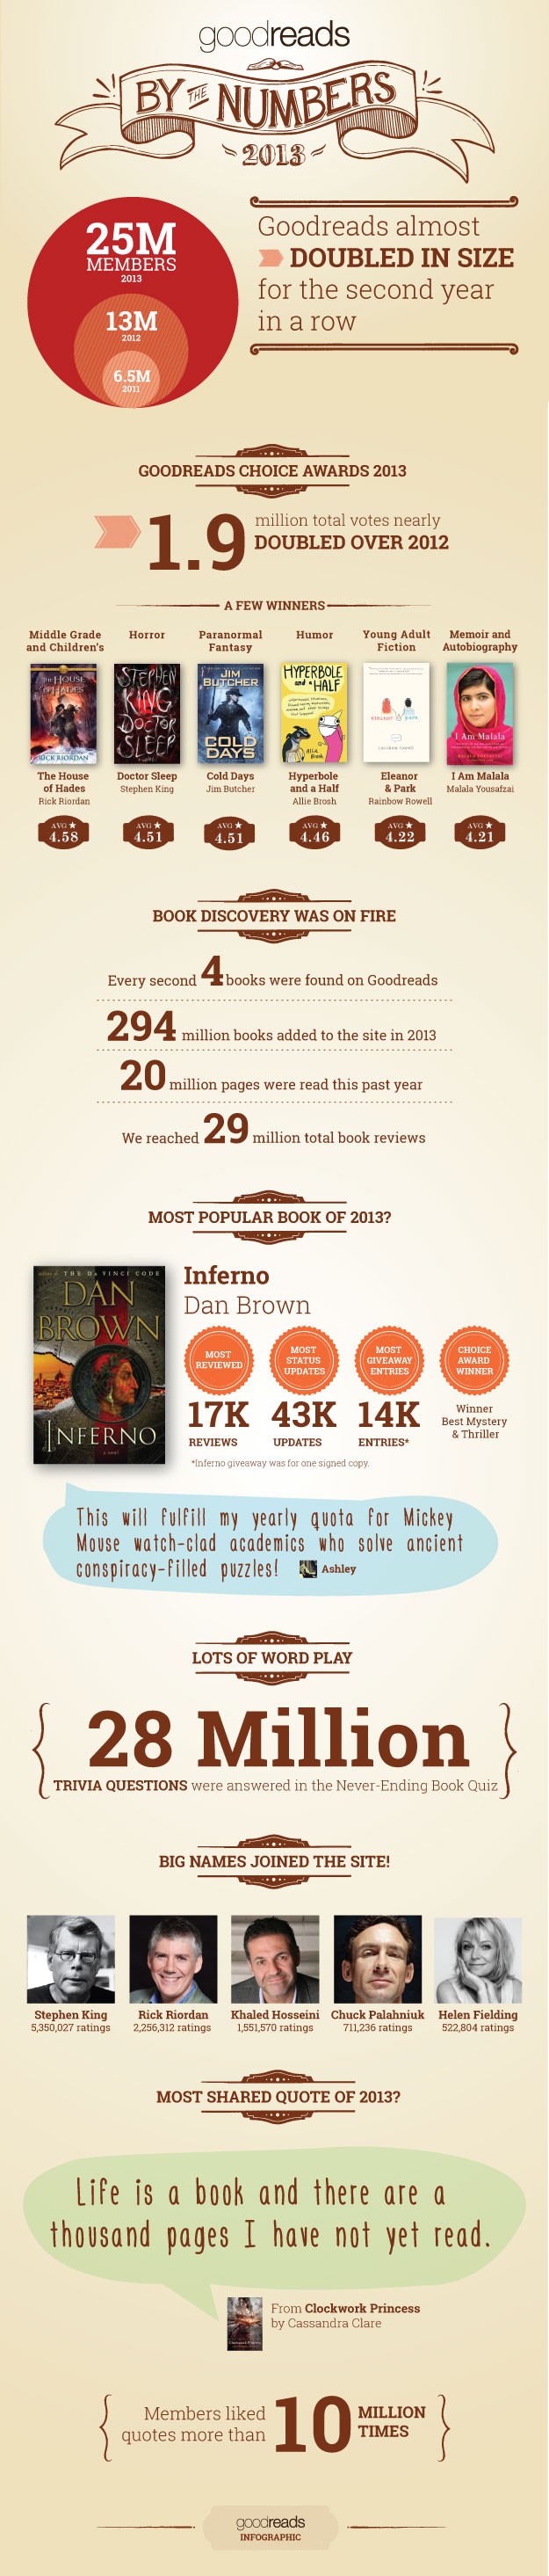 1388556314 1388556314 goodreads misc A Look at Goodreads During 2013 (Infographic)